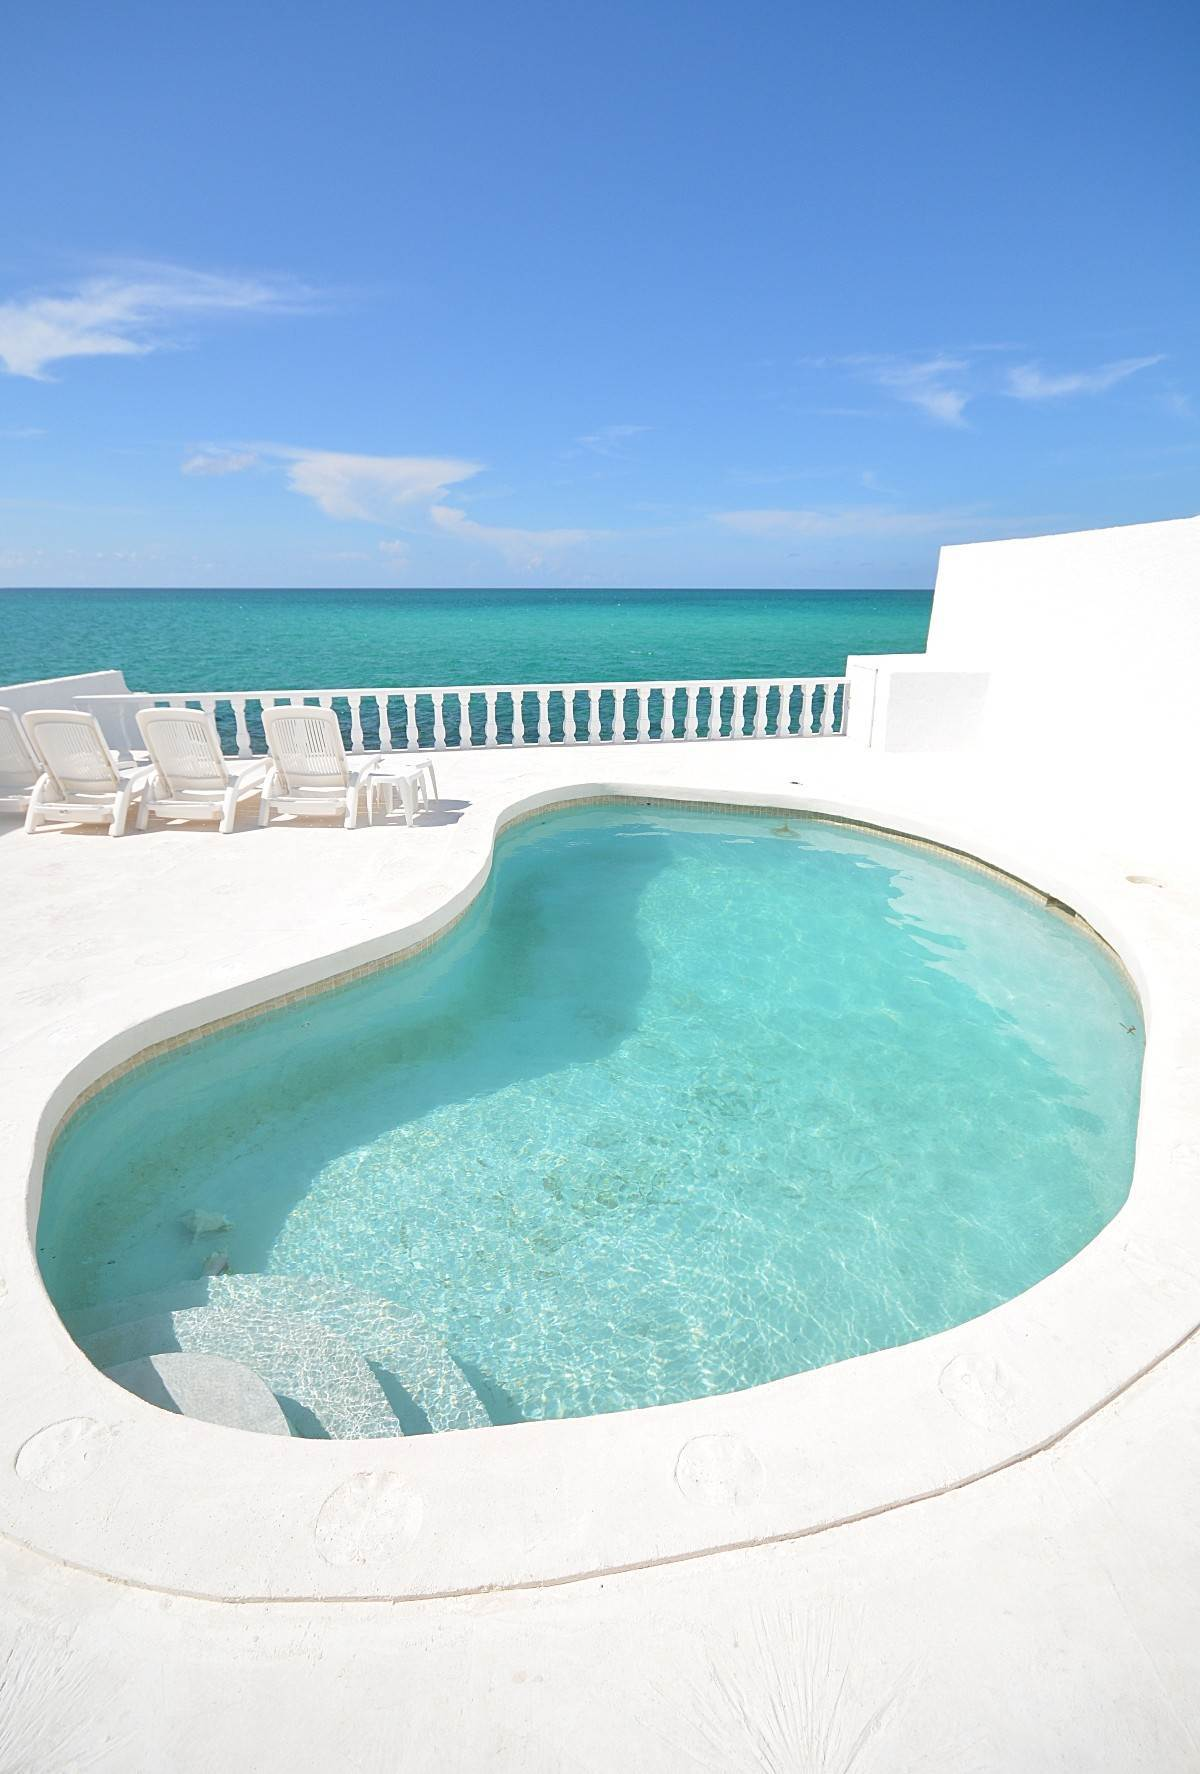 Single Family Homes for Rent at Caprice, Waterfront Home in Cable Beach with pool Caprice, Cable Beach, Nassau And Paradise Island Bahamas